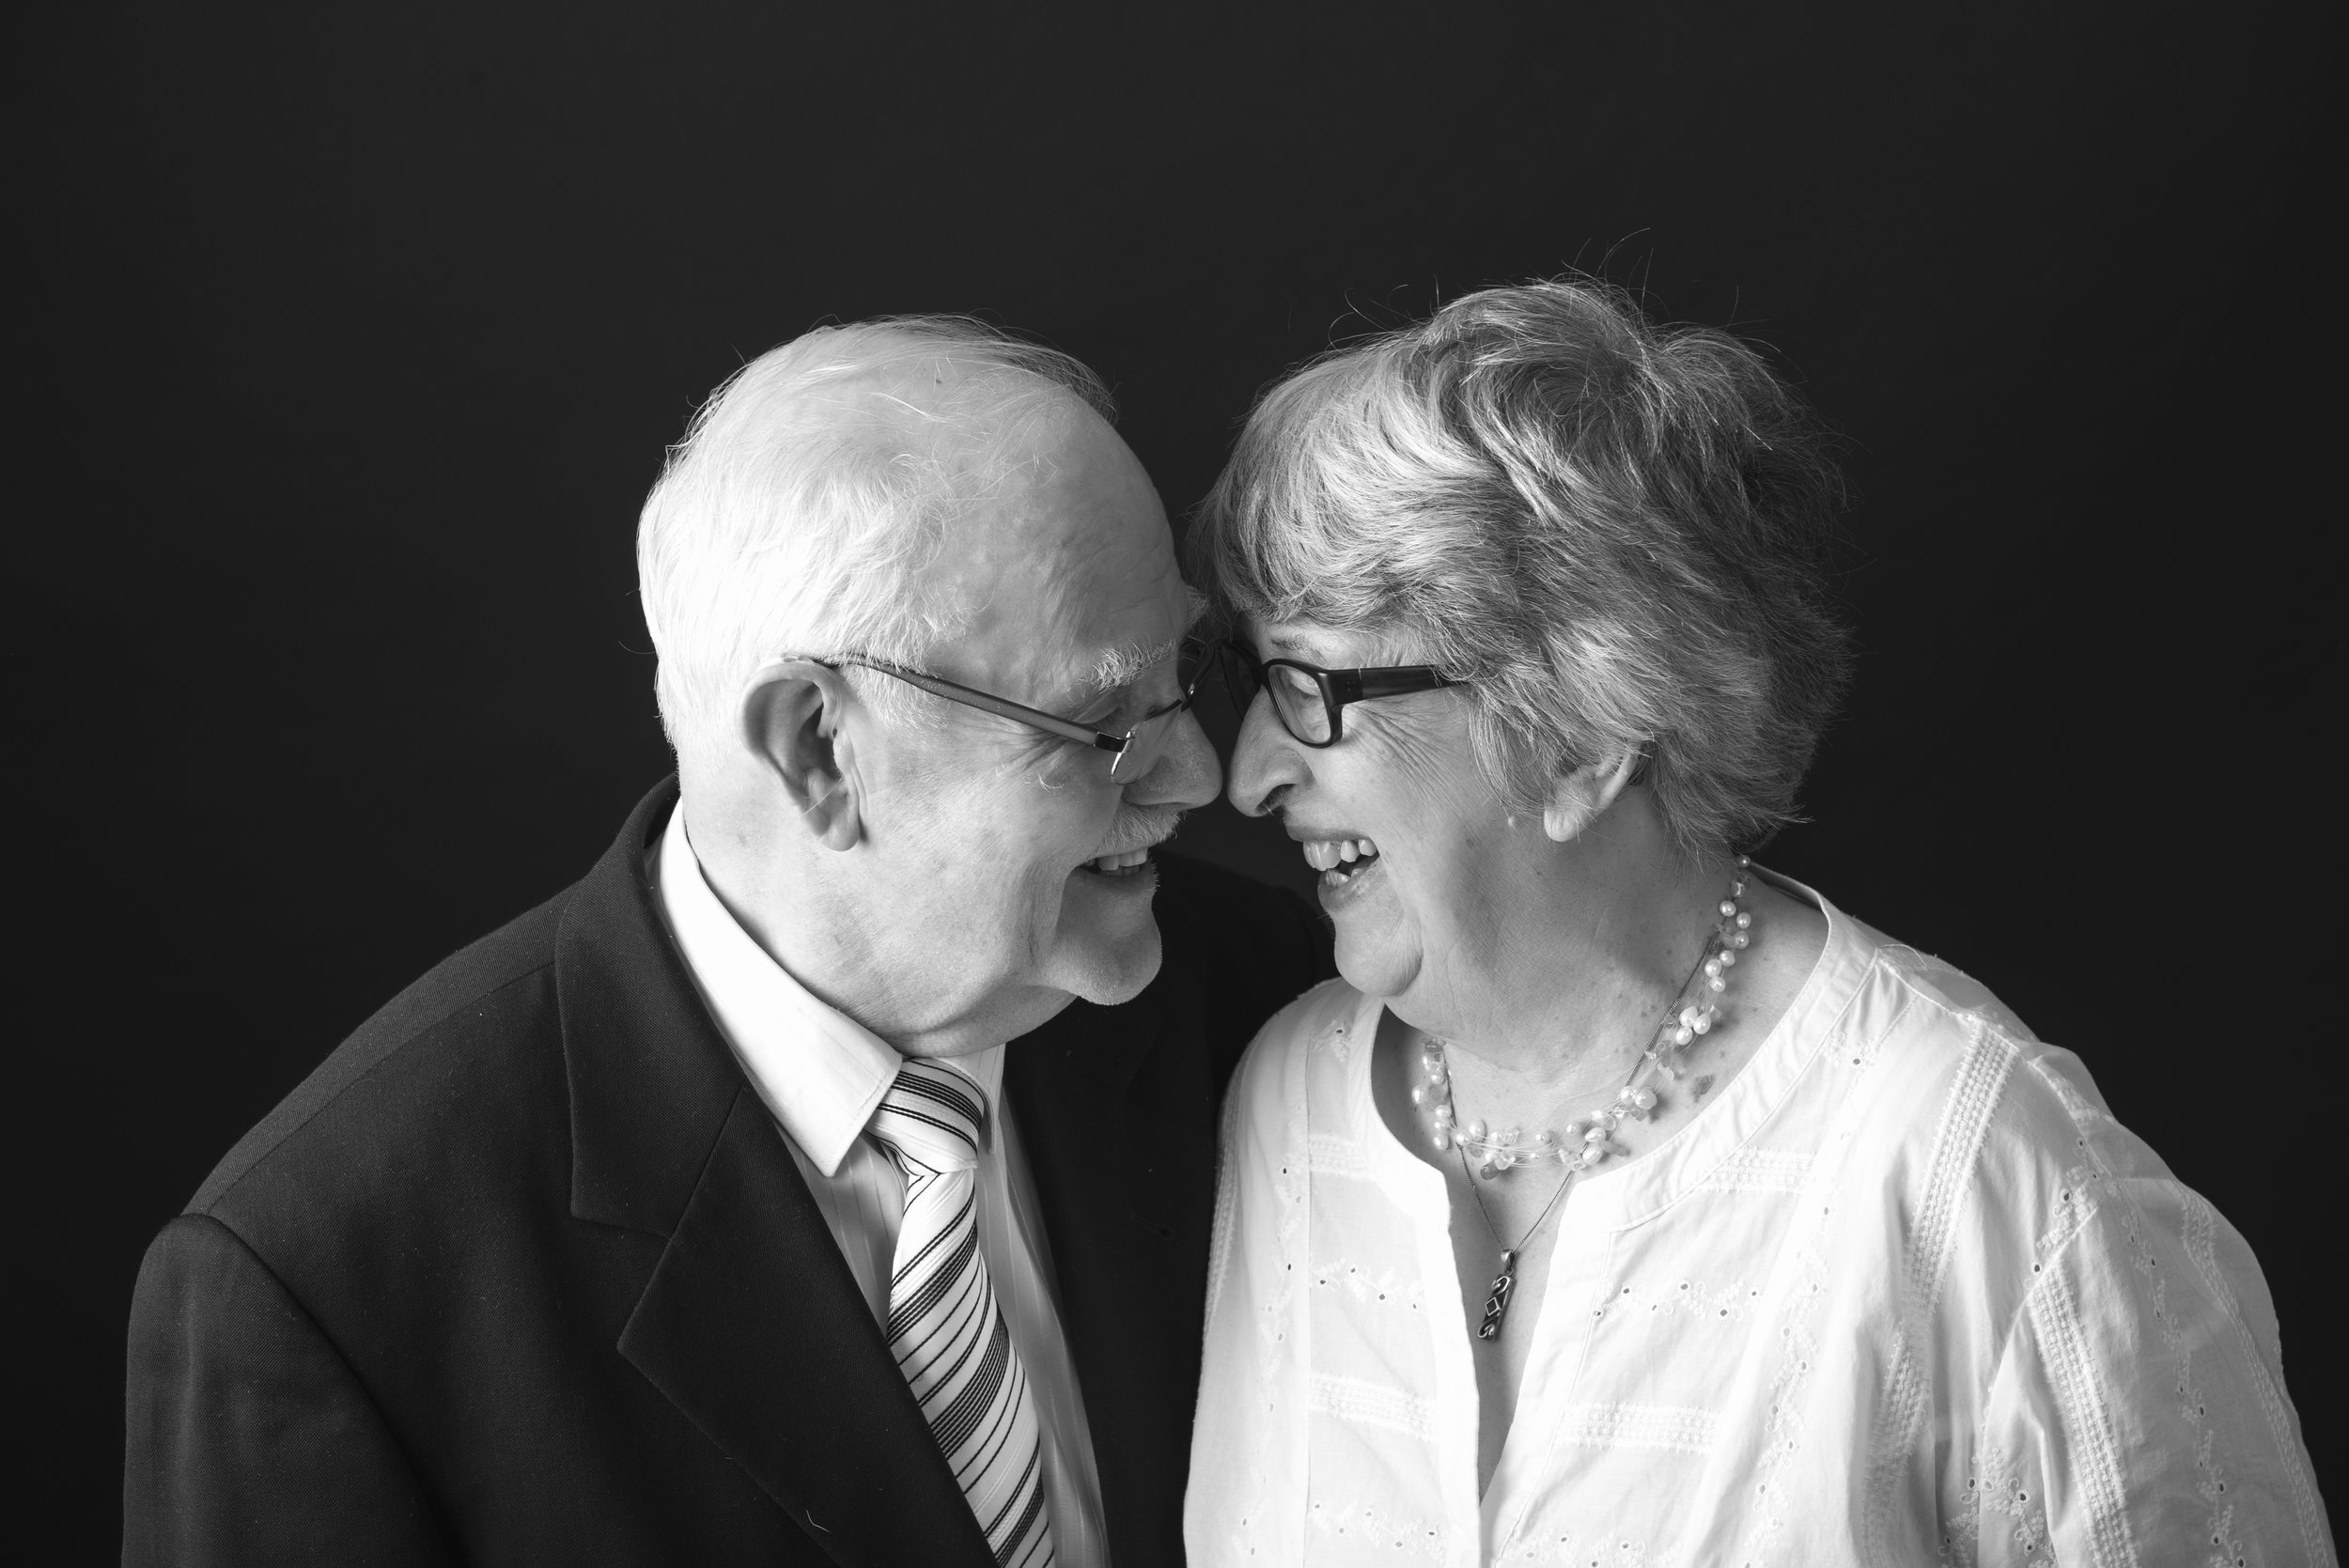 Jed's Parents; Don & Ruth came in for 50th Wedding Anniversary Photos.